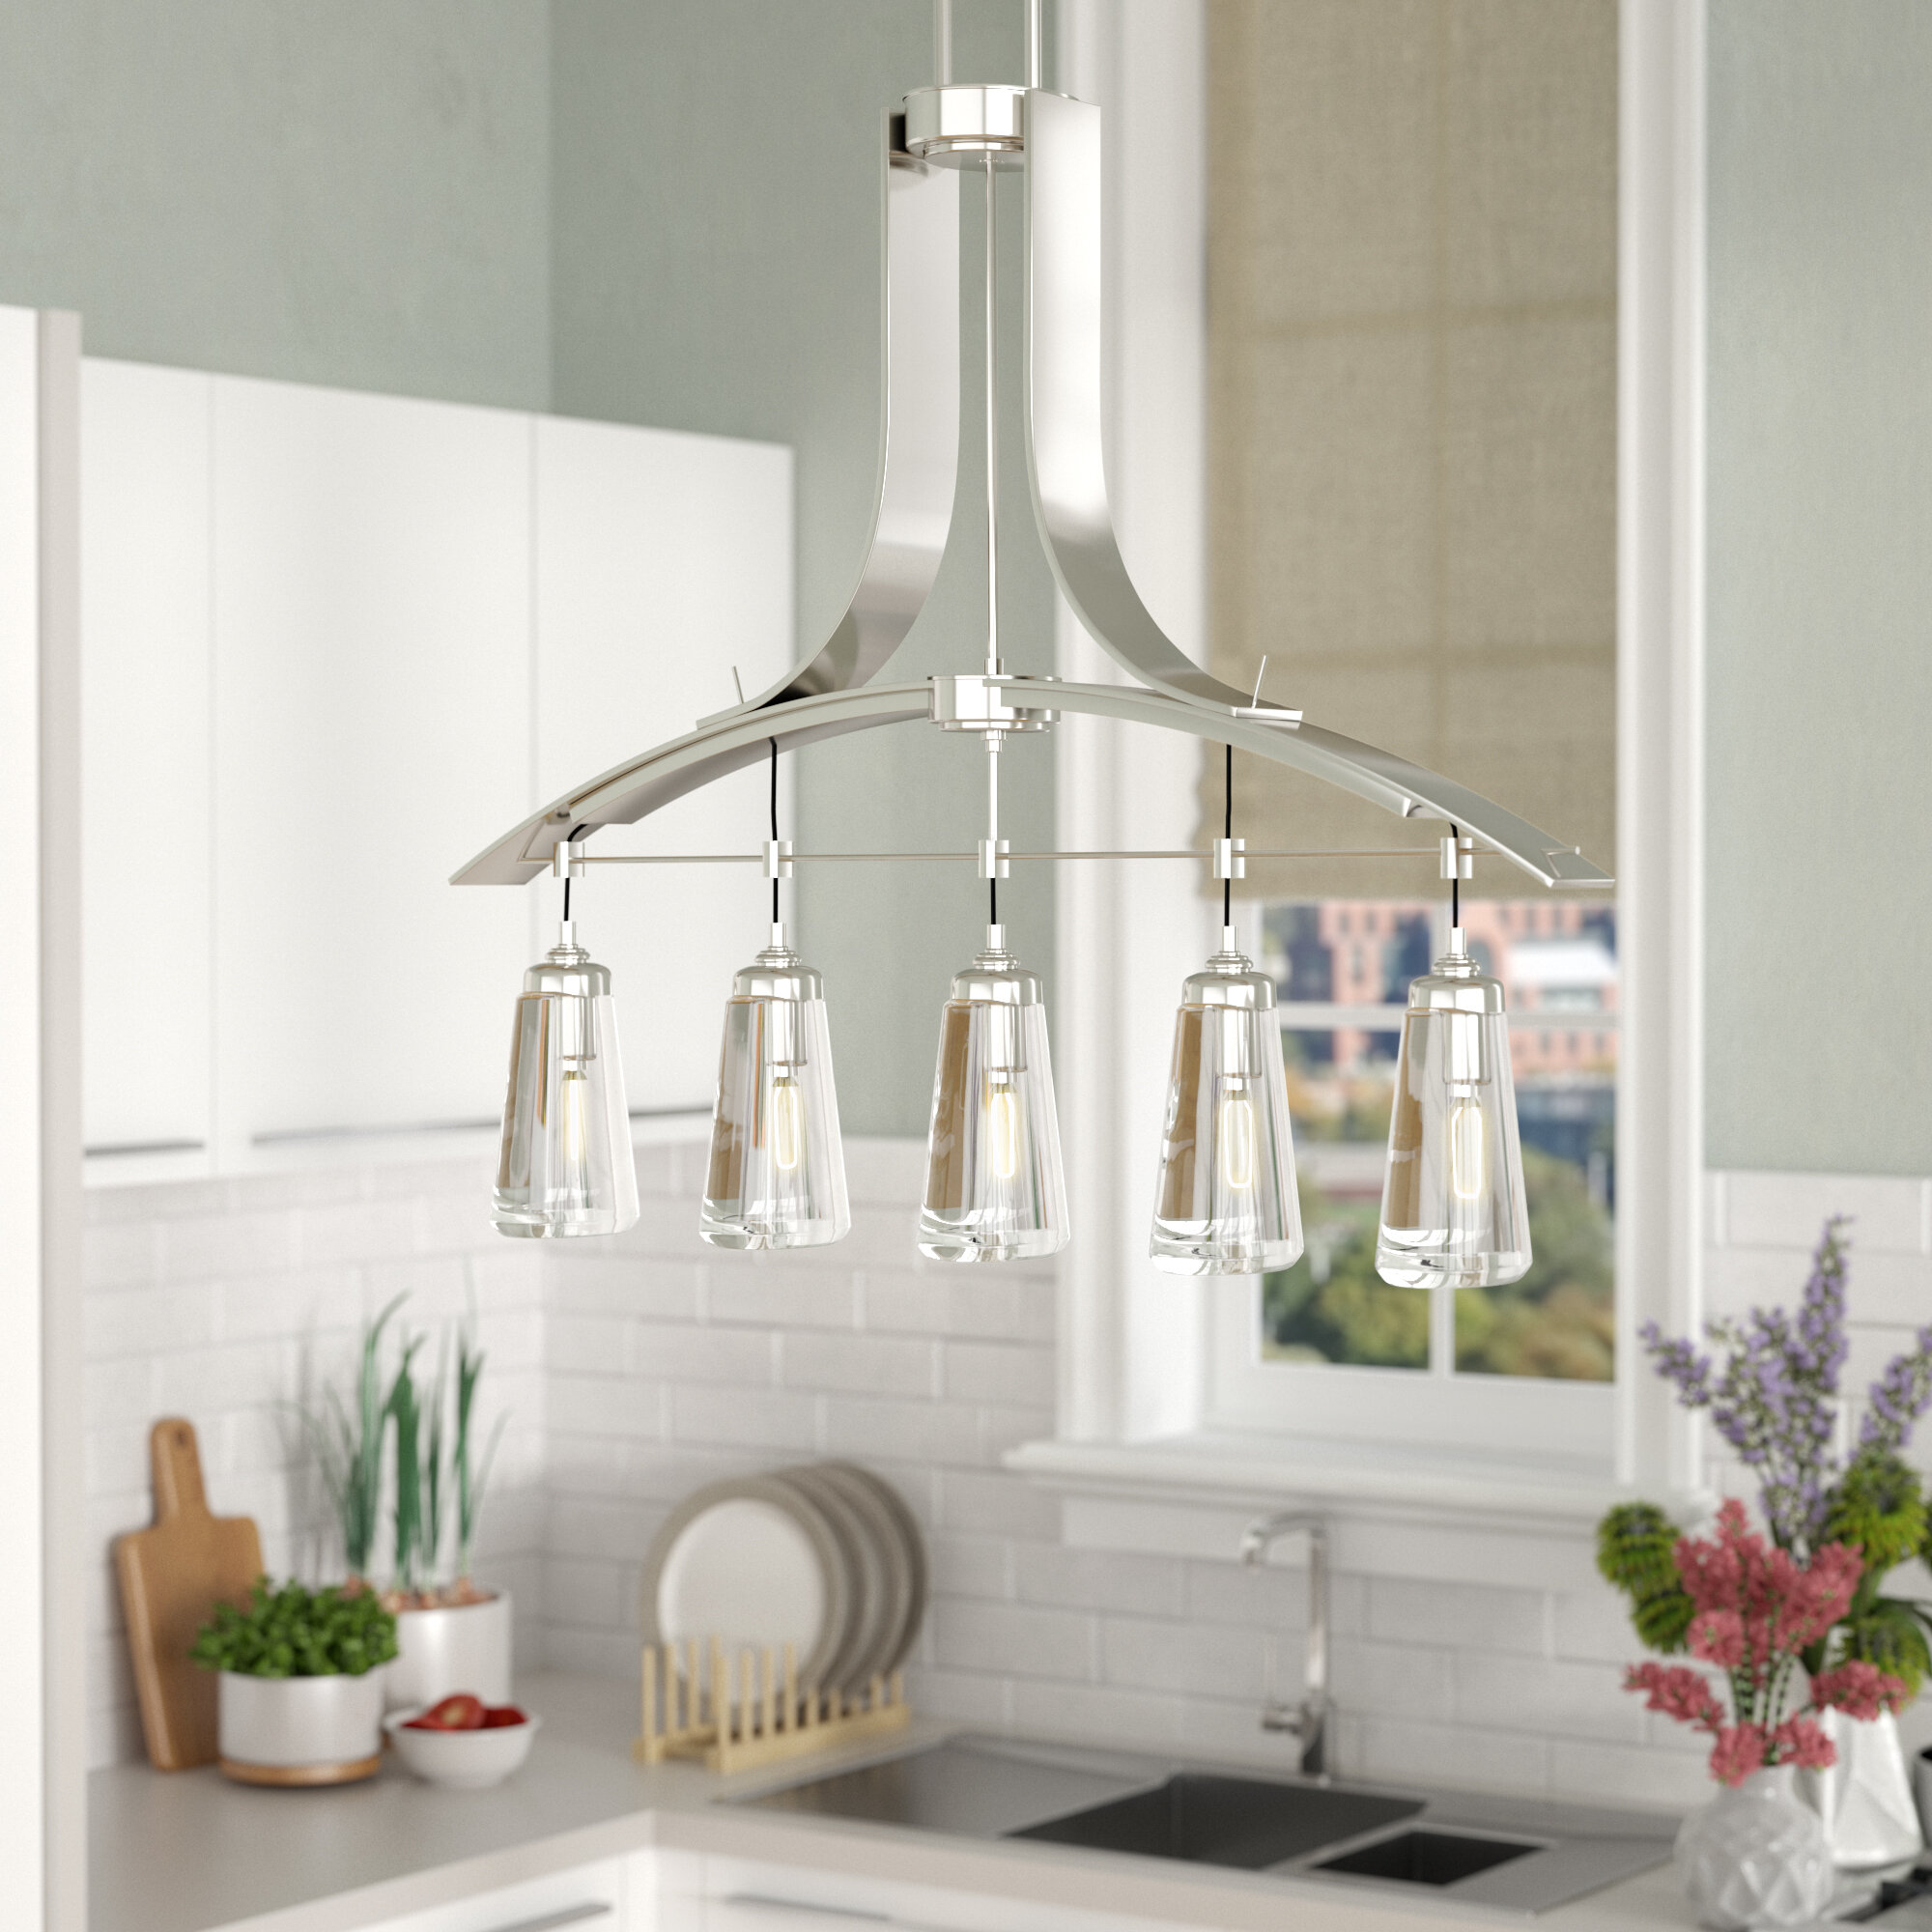 Brayden Studio Omeara 5 Light Kitchen Island Pendant U0026 Reviews | Wayfair